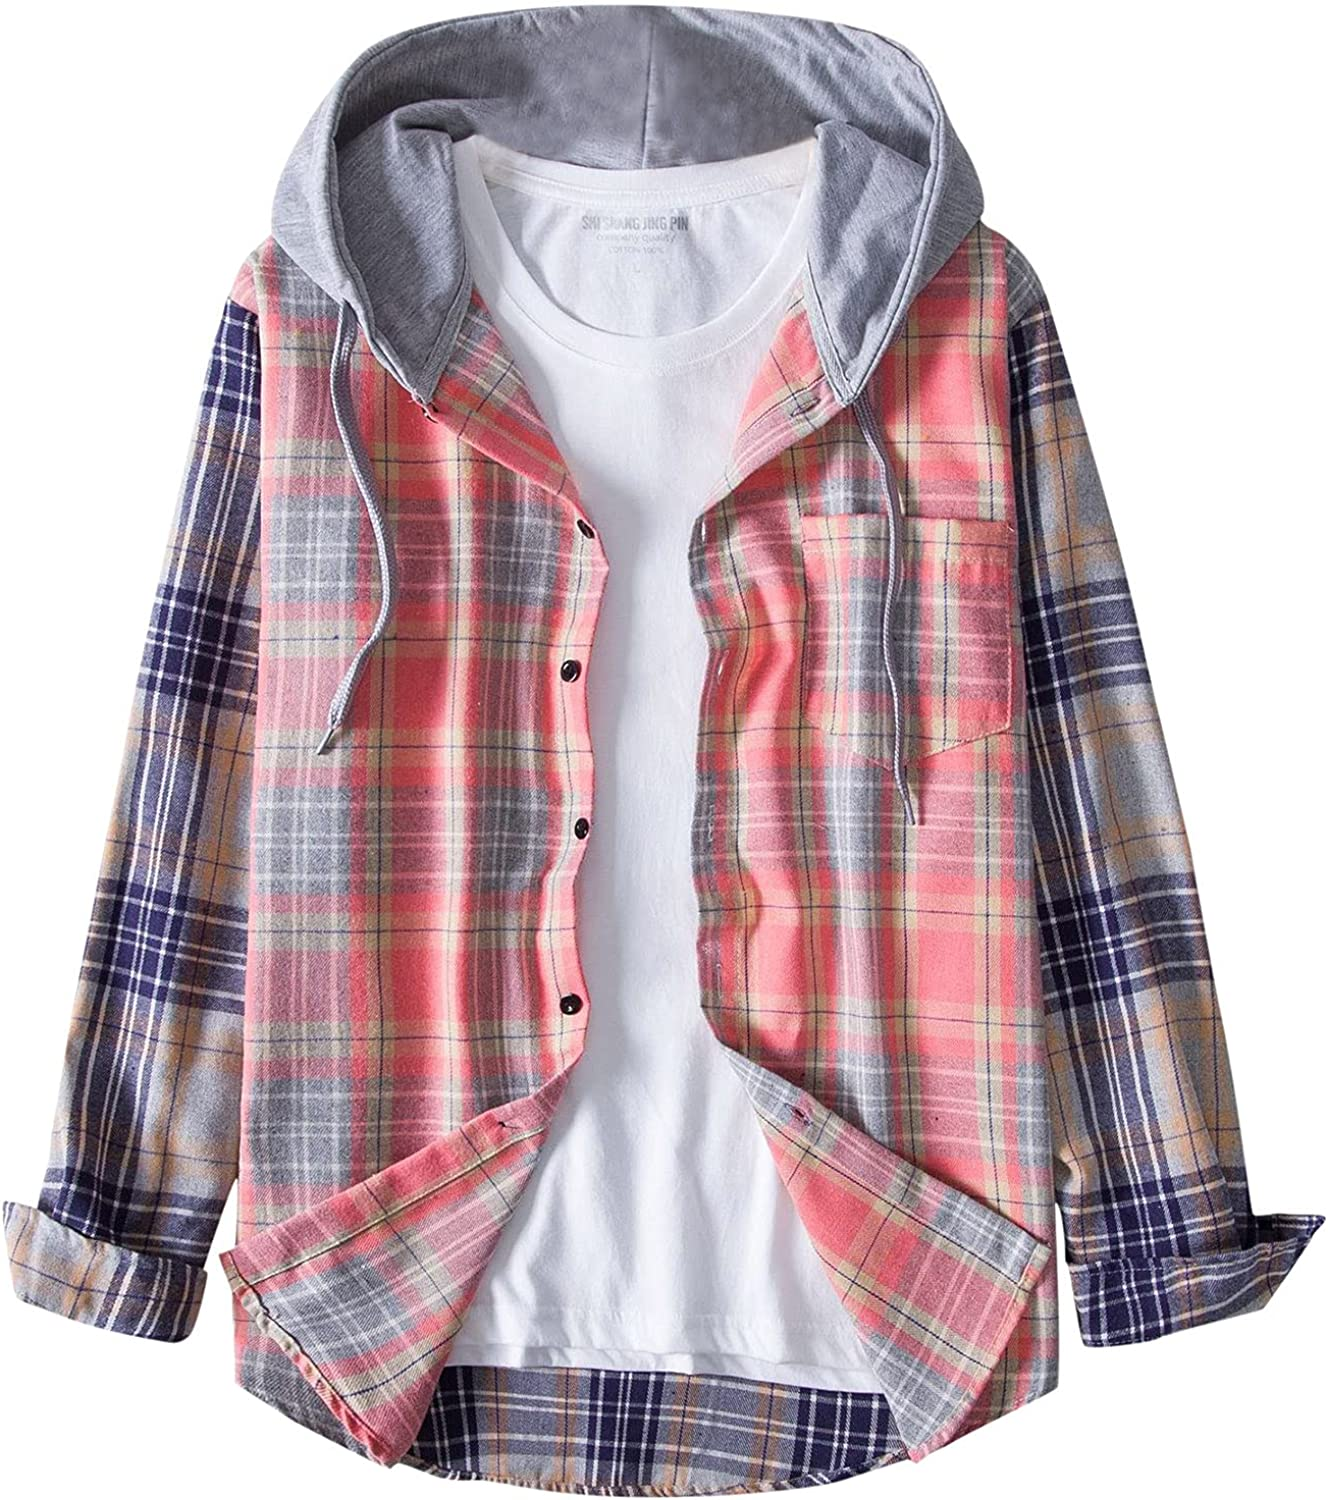 XXBR Plaid Hooded Shirts for Mens, Fall Button Down Long Sleeve Fashion Checked Vintage Casual Hoodies Shirt with Pocket